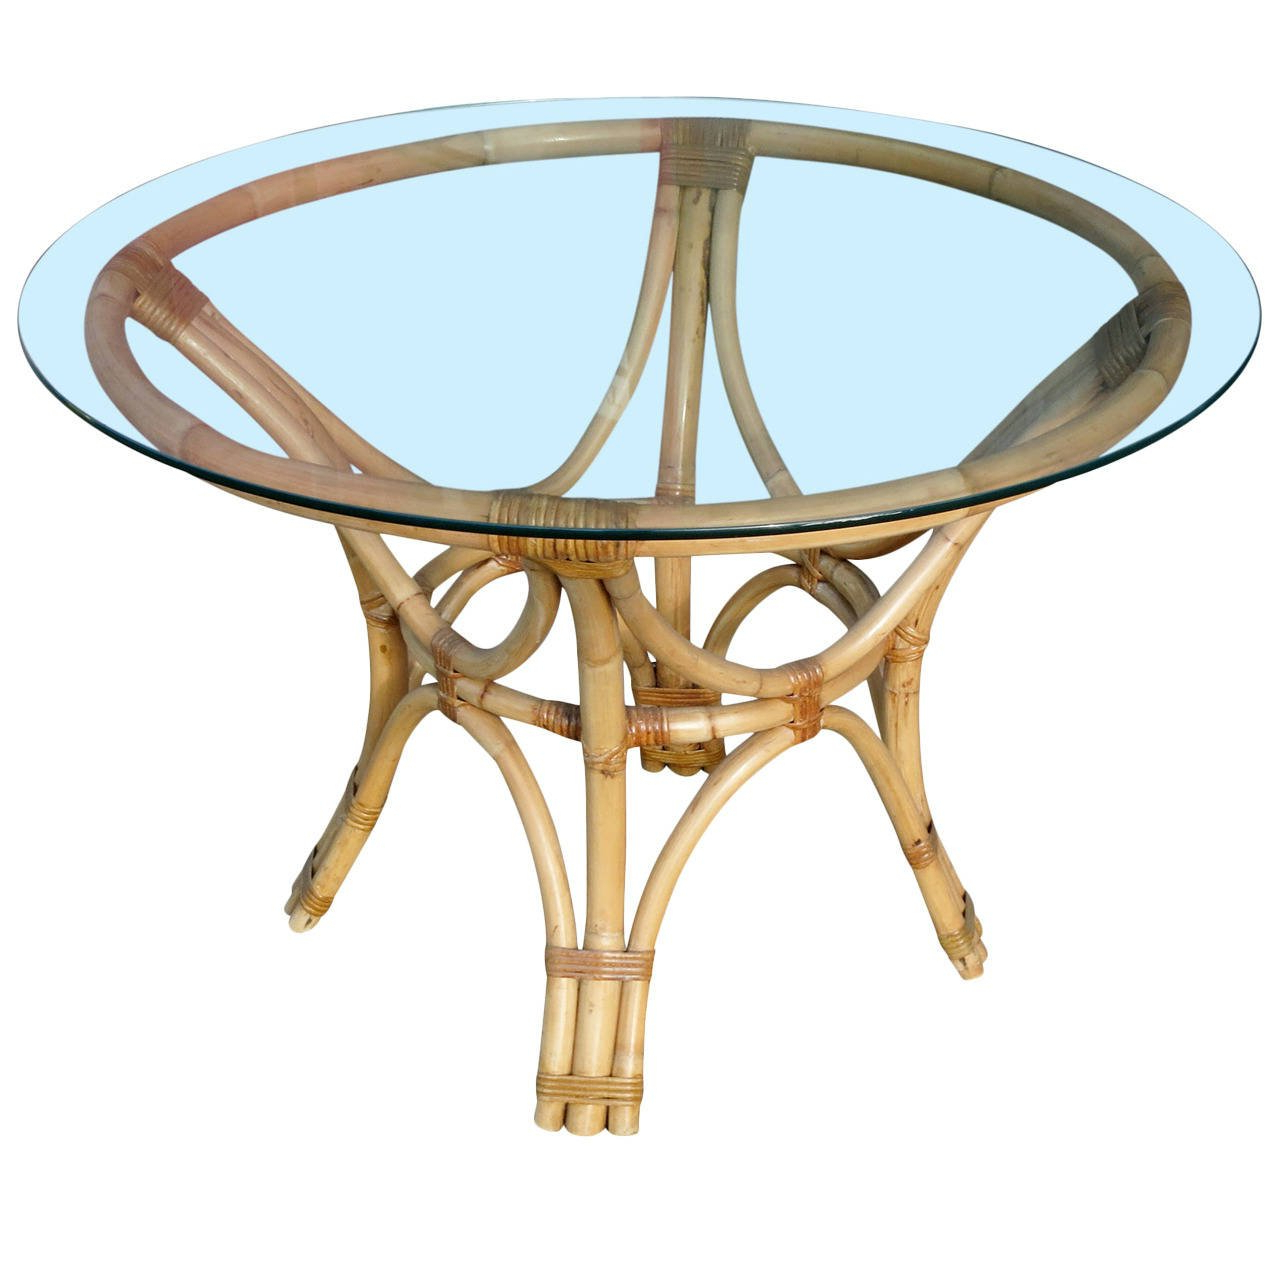 Rattan Bent Wood Dining Table With Round Glass Top For Retro With Regard To 2018 Retro Round Glasstop Dining Tables (View 29 of 30)